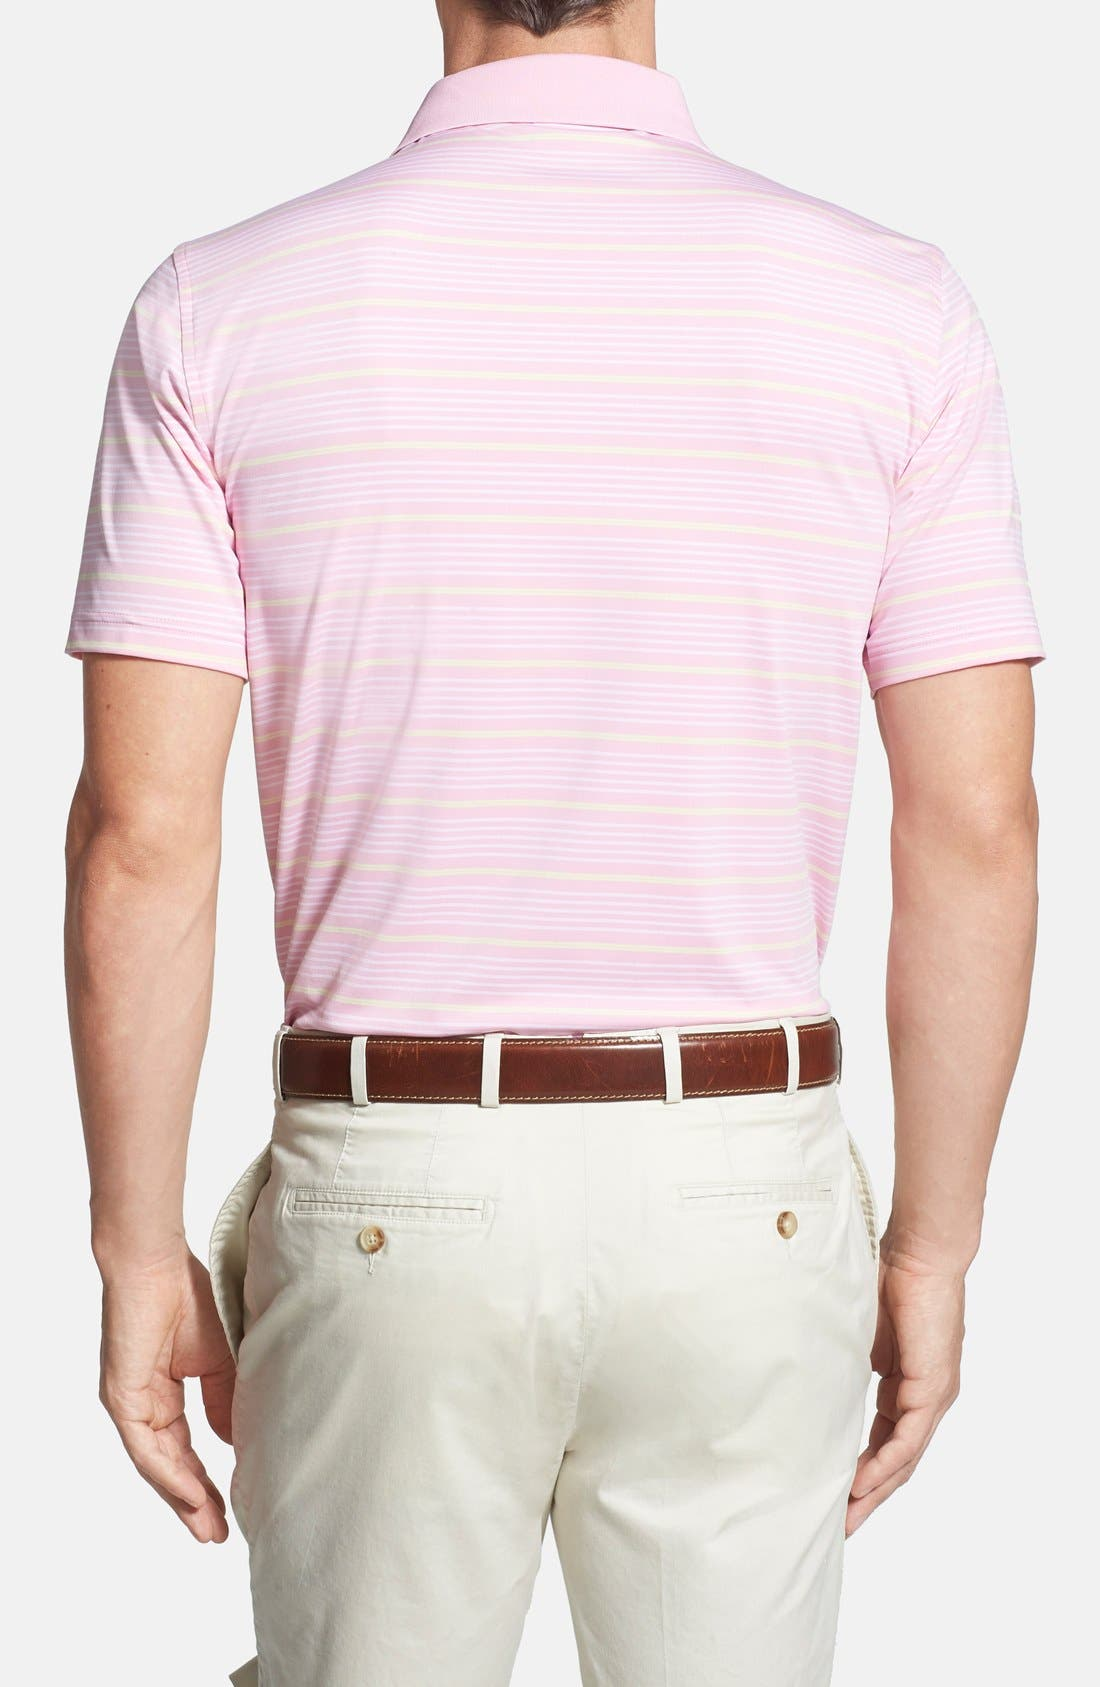 'Staley' Moisture Wicking Polo,                             Alternate thumbnail 2, color,                             Bermuda Pink